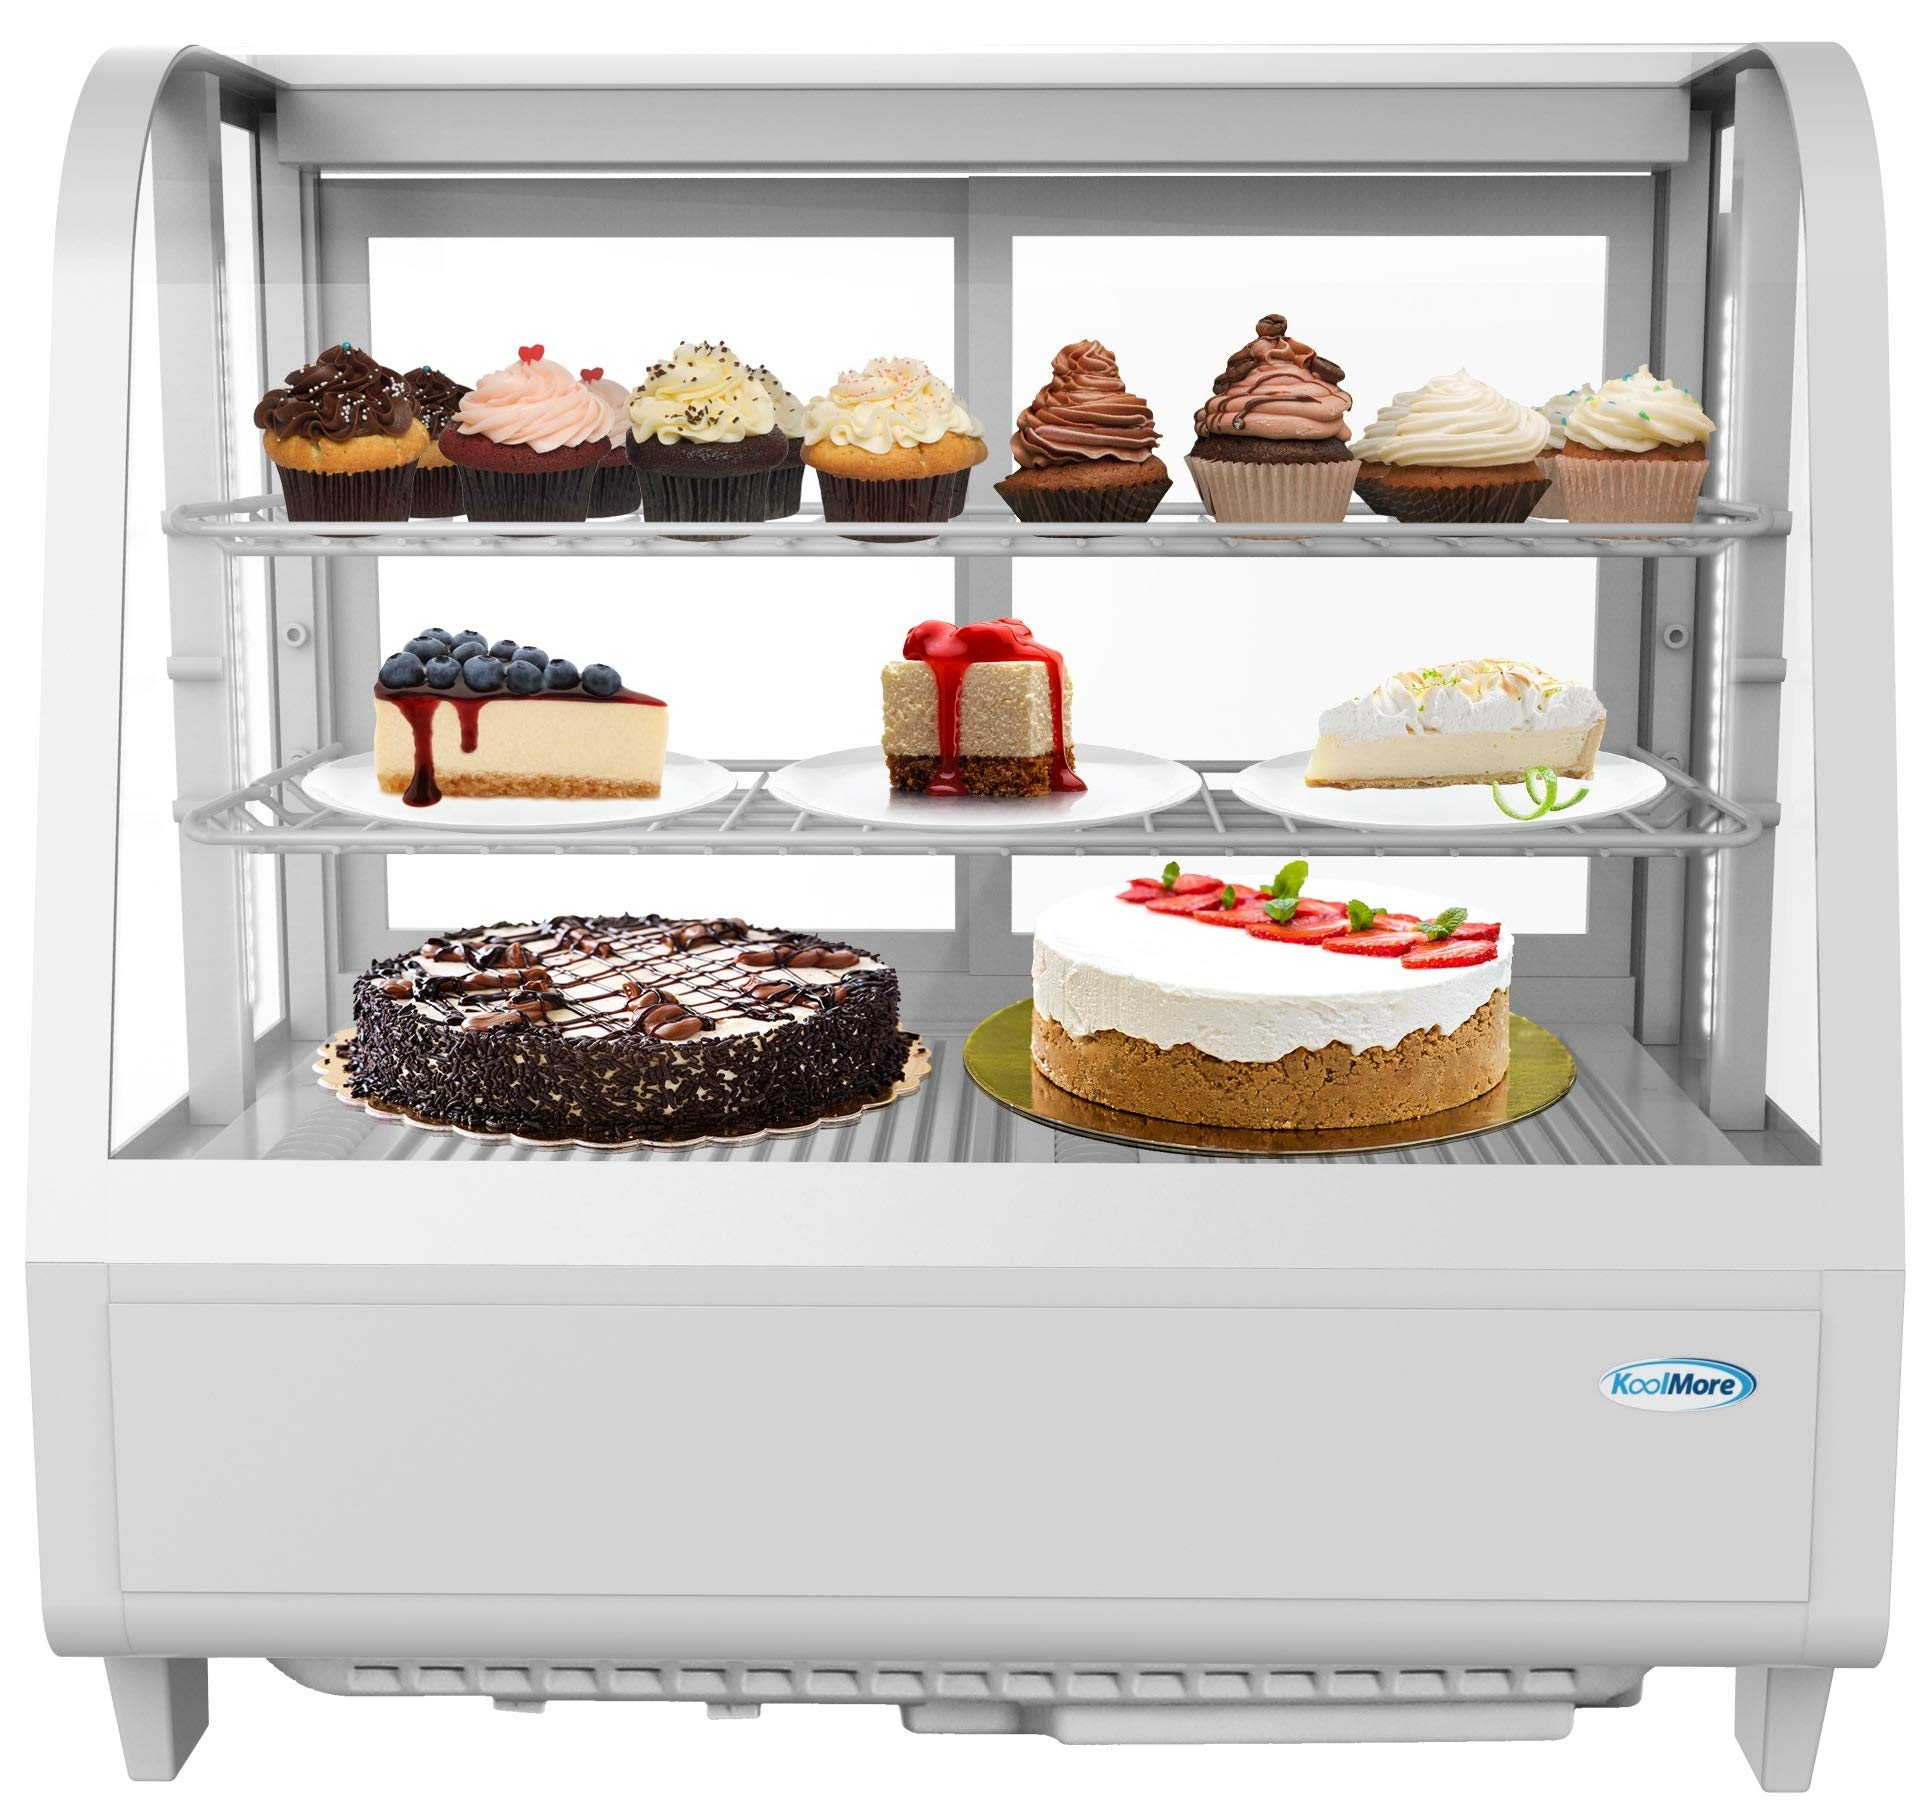 KoolMore Commercial Countertop Refrigerator Display Case Merchandiser with LED Lighting - 3.6 cu. ft by KoolMore (Image #1)